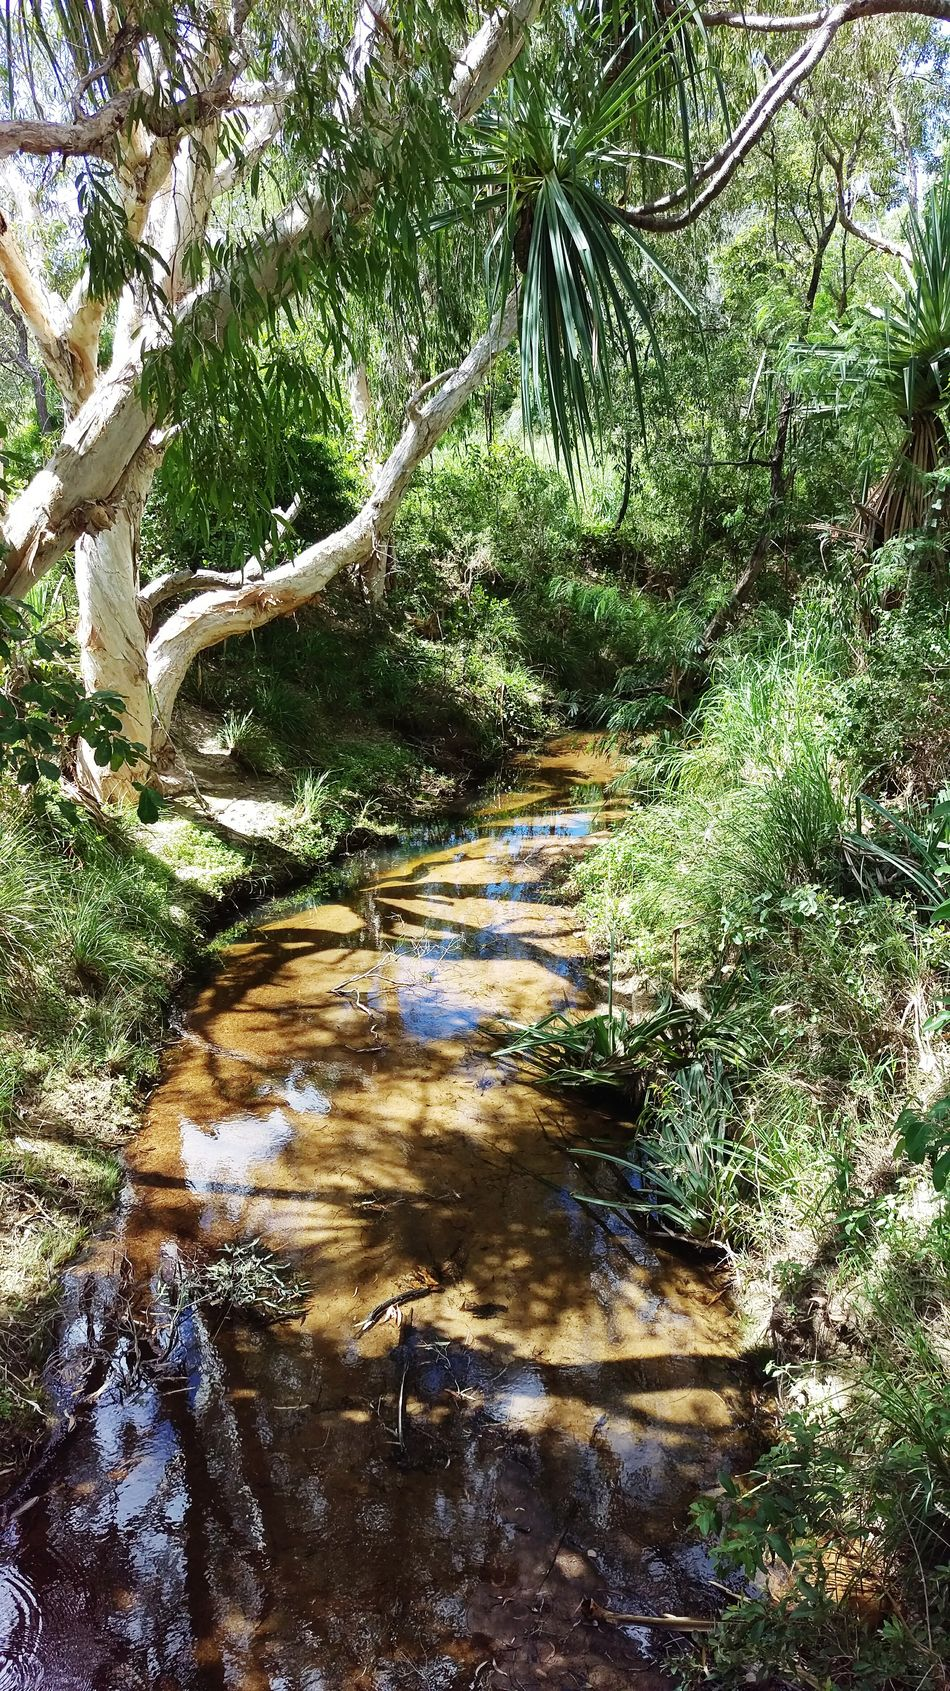 Country Stream Creek Nature Day Outdoors Water Tranquility Tree No People Tranquil Scene Growth Reflection Beauty In Nature Forest Sunlight Scenics